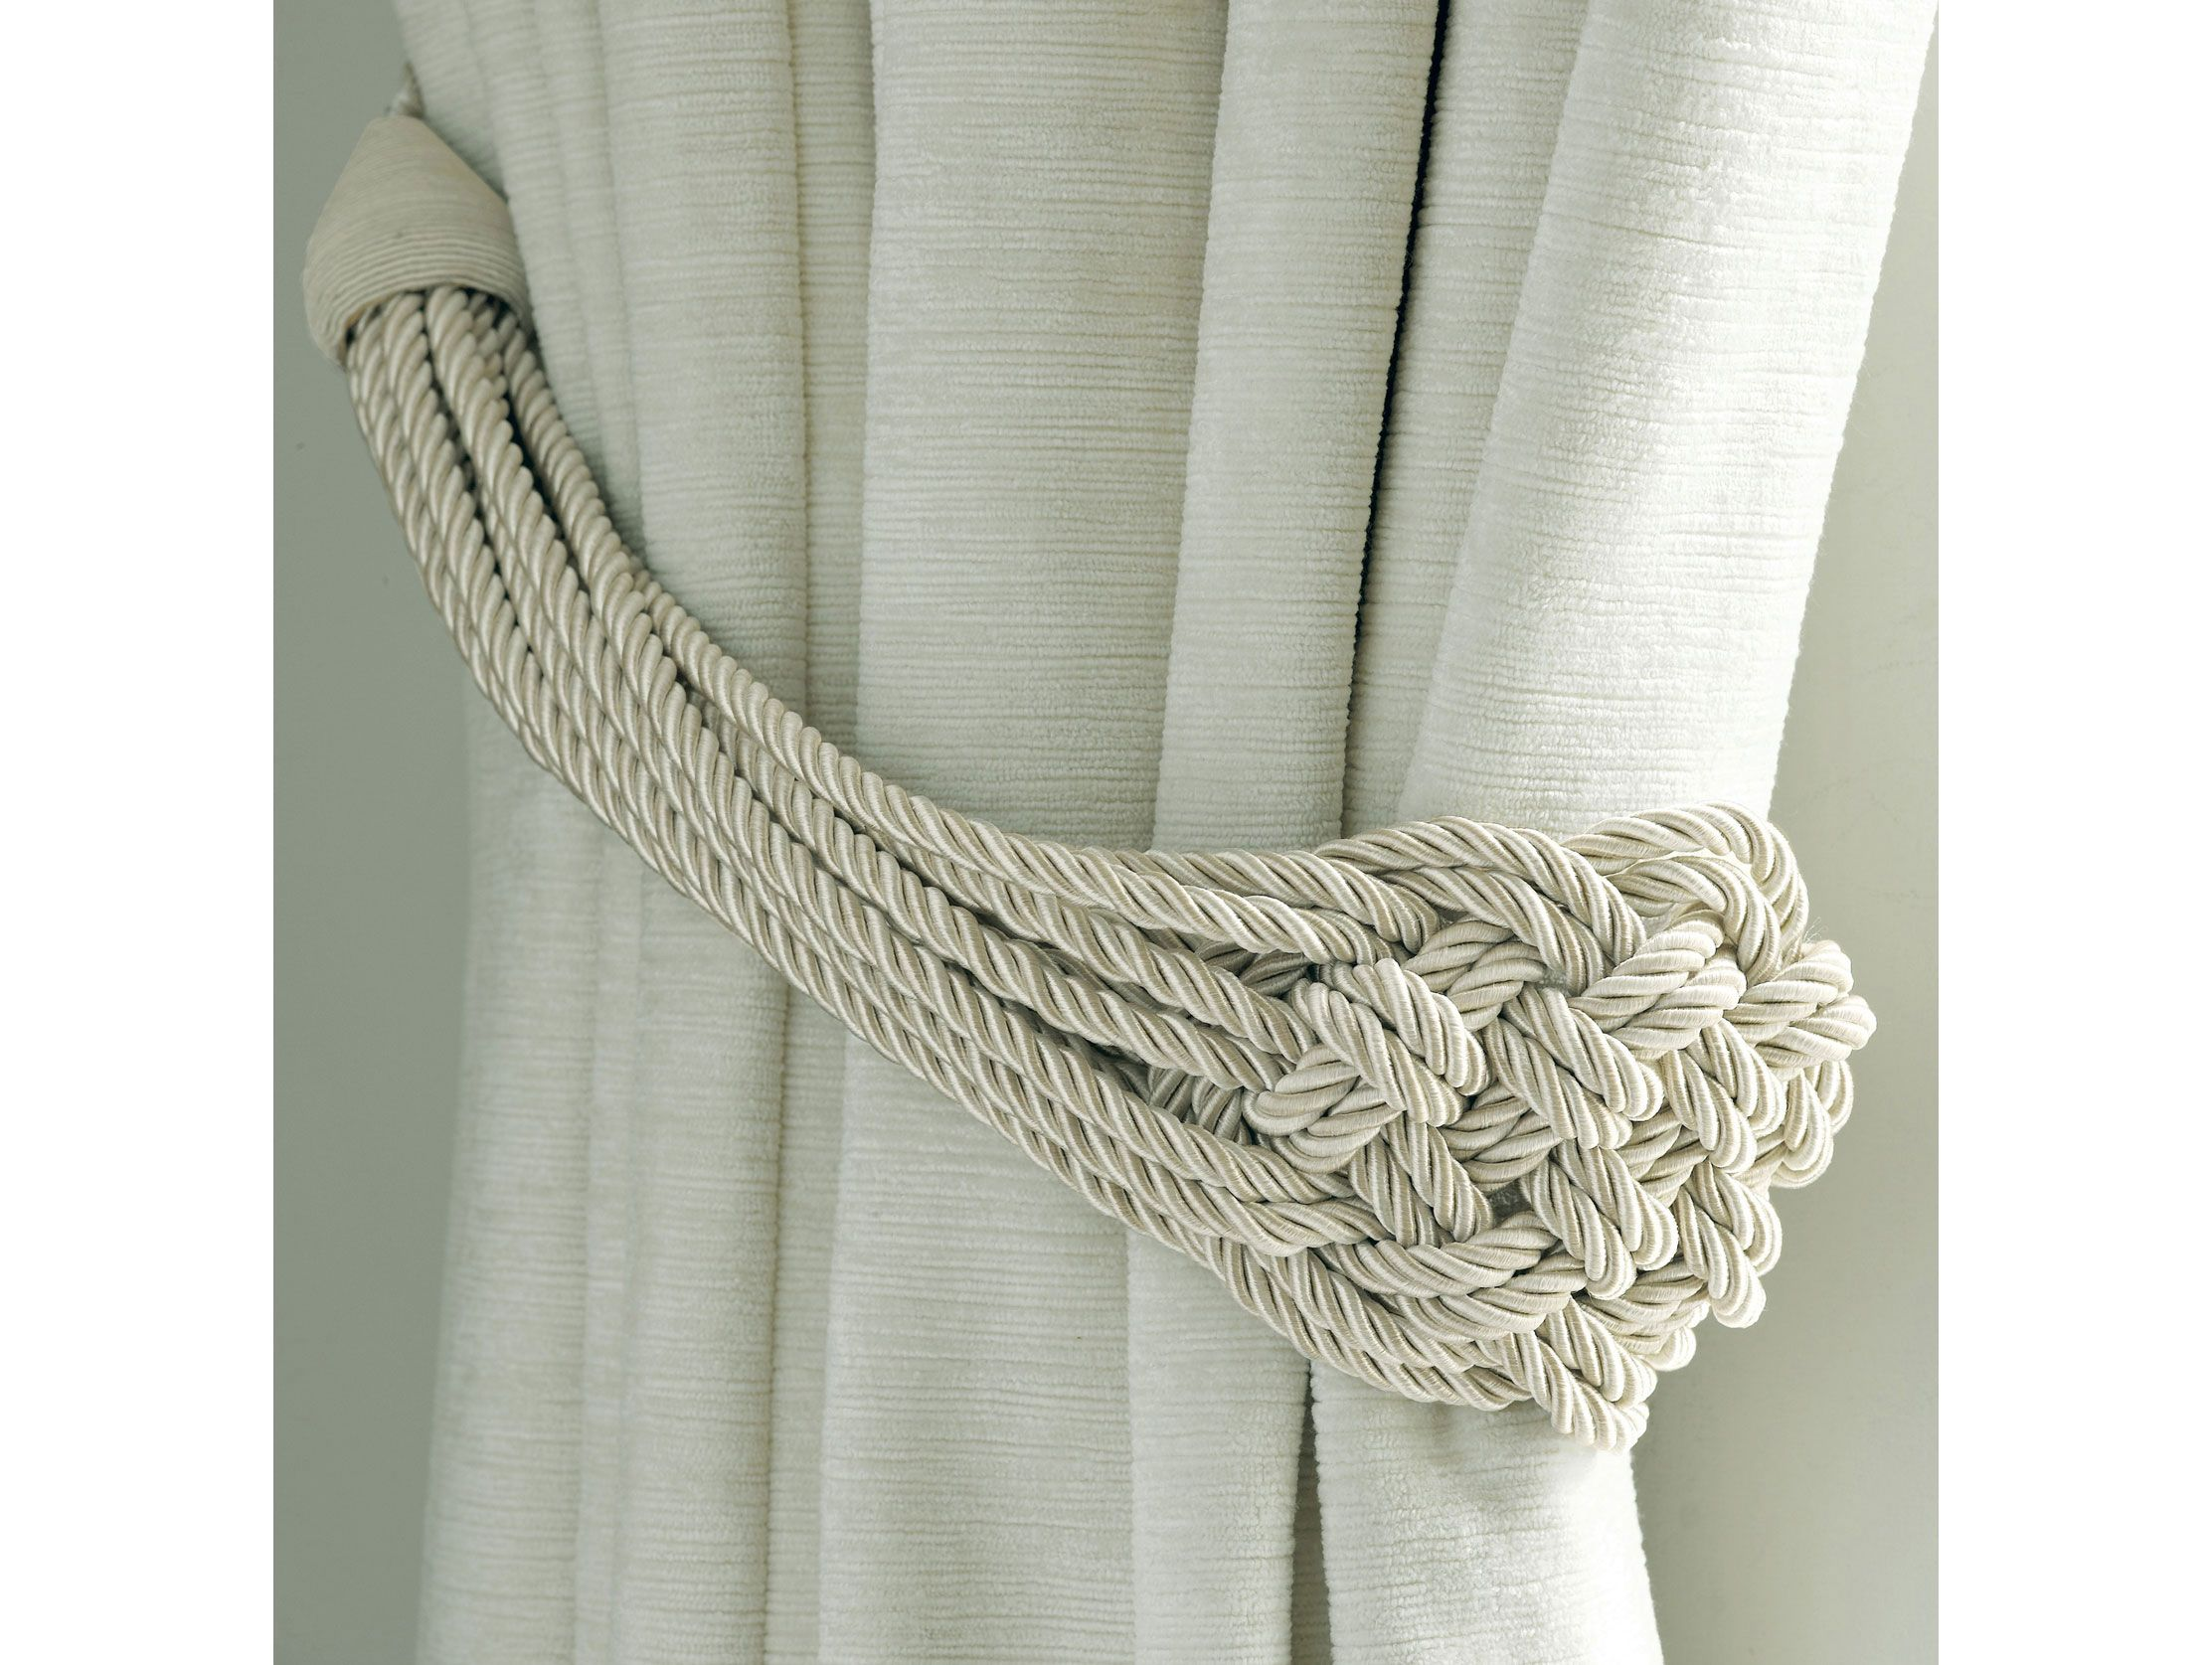 Plaited Rope Laura Ashley Ata Me Curtains Curtain